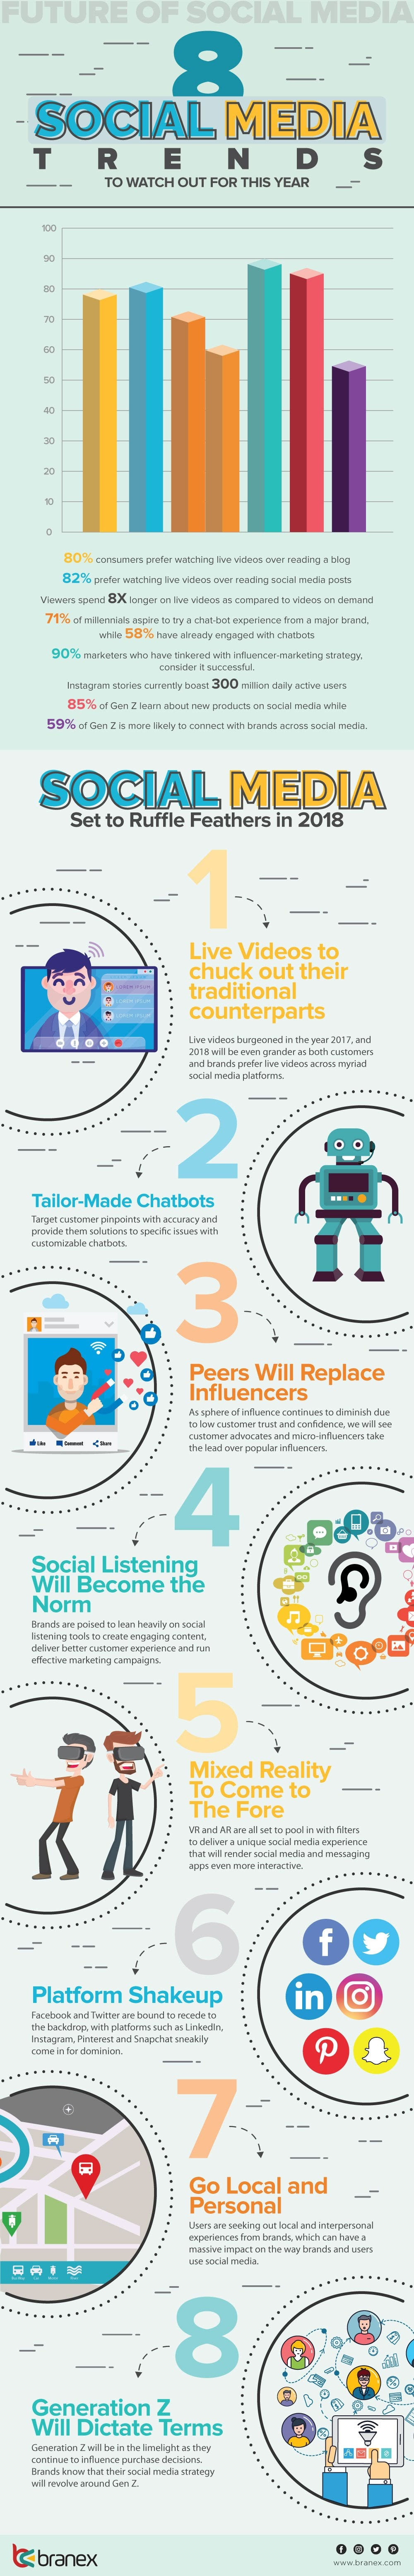 8 Social Media Trends to Watch Out For This Year - #infographic